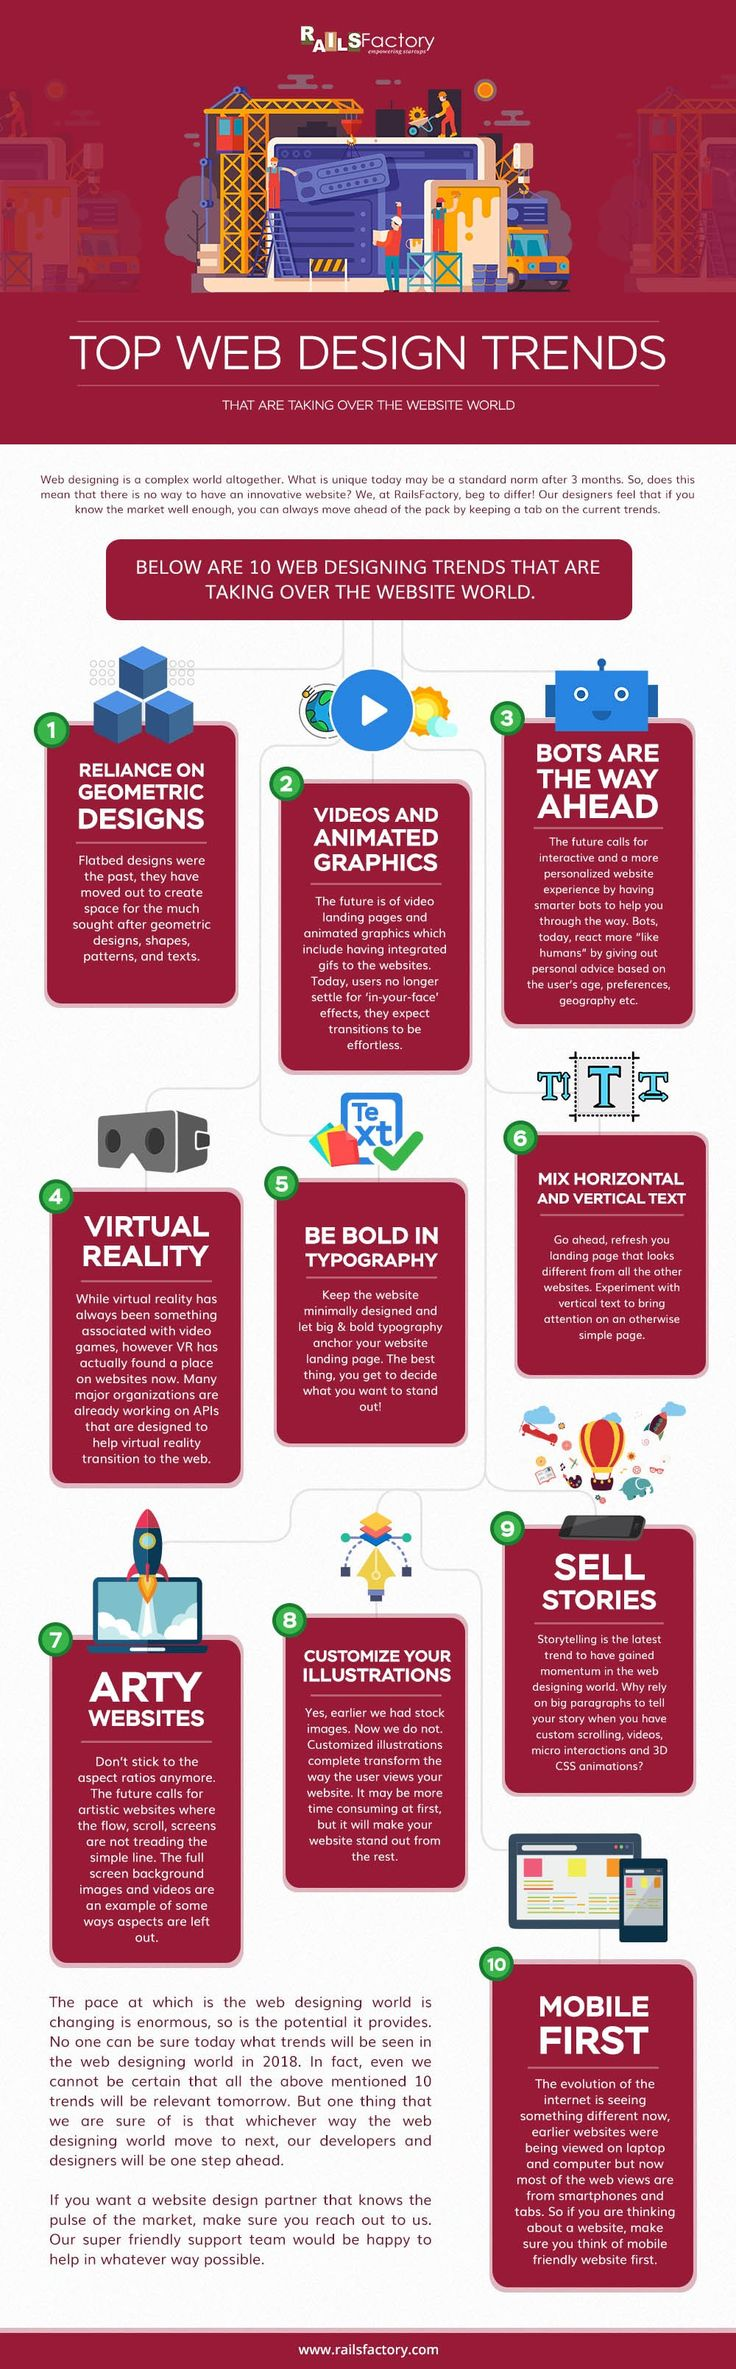 The Hottest Web Design Trends to Look Out For in 2018 - #infographic